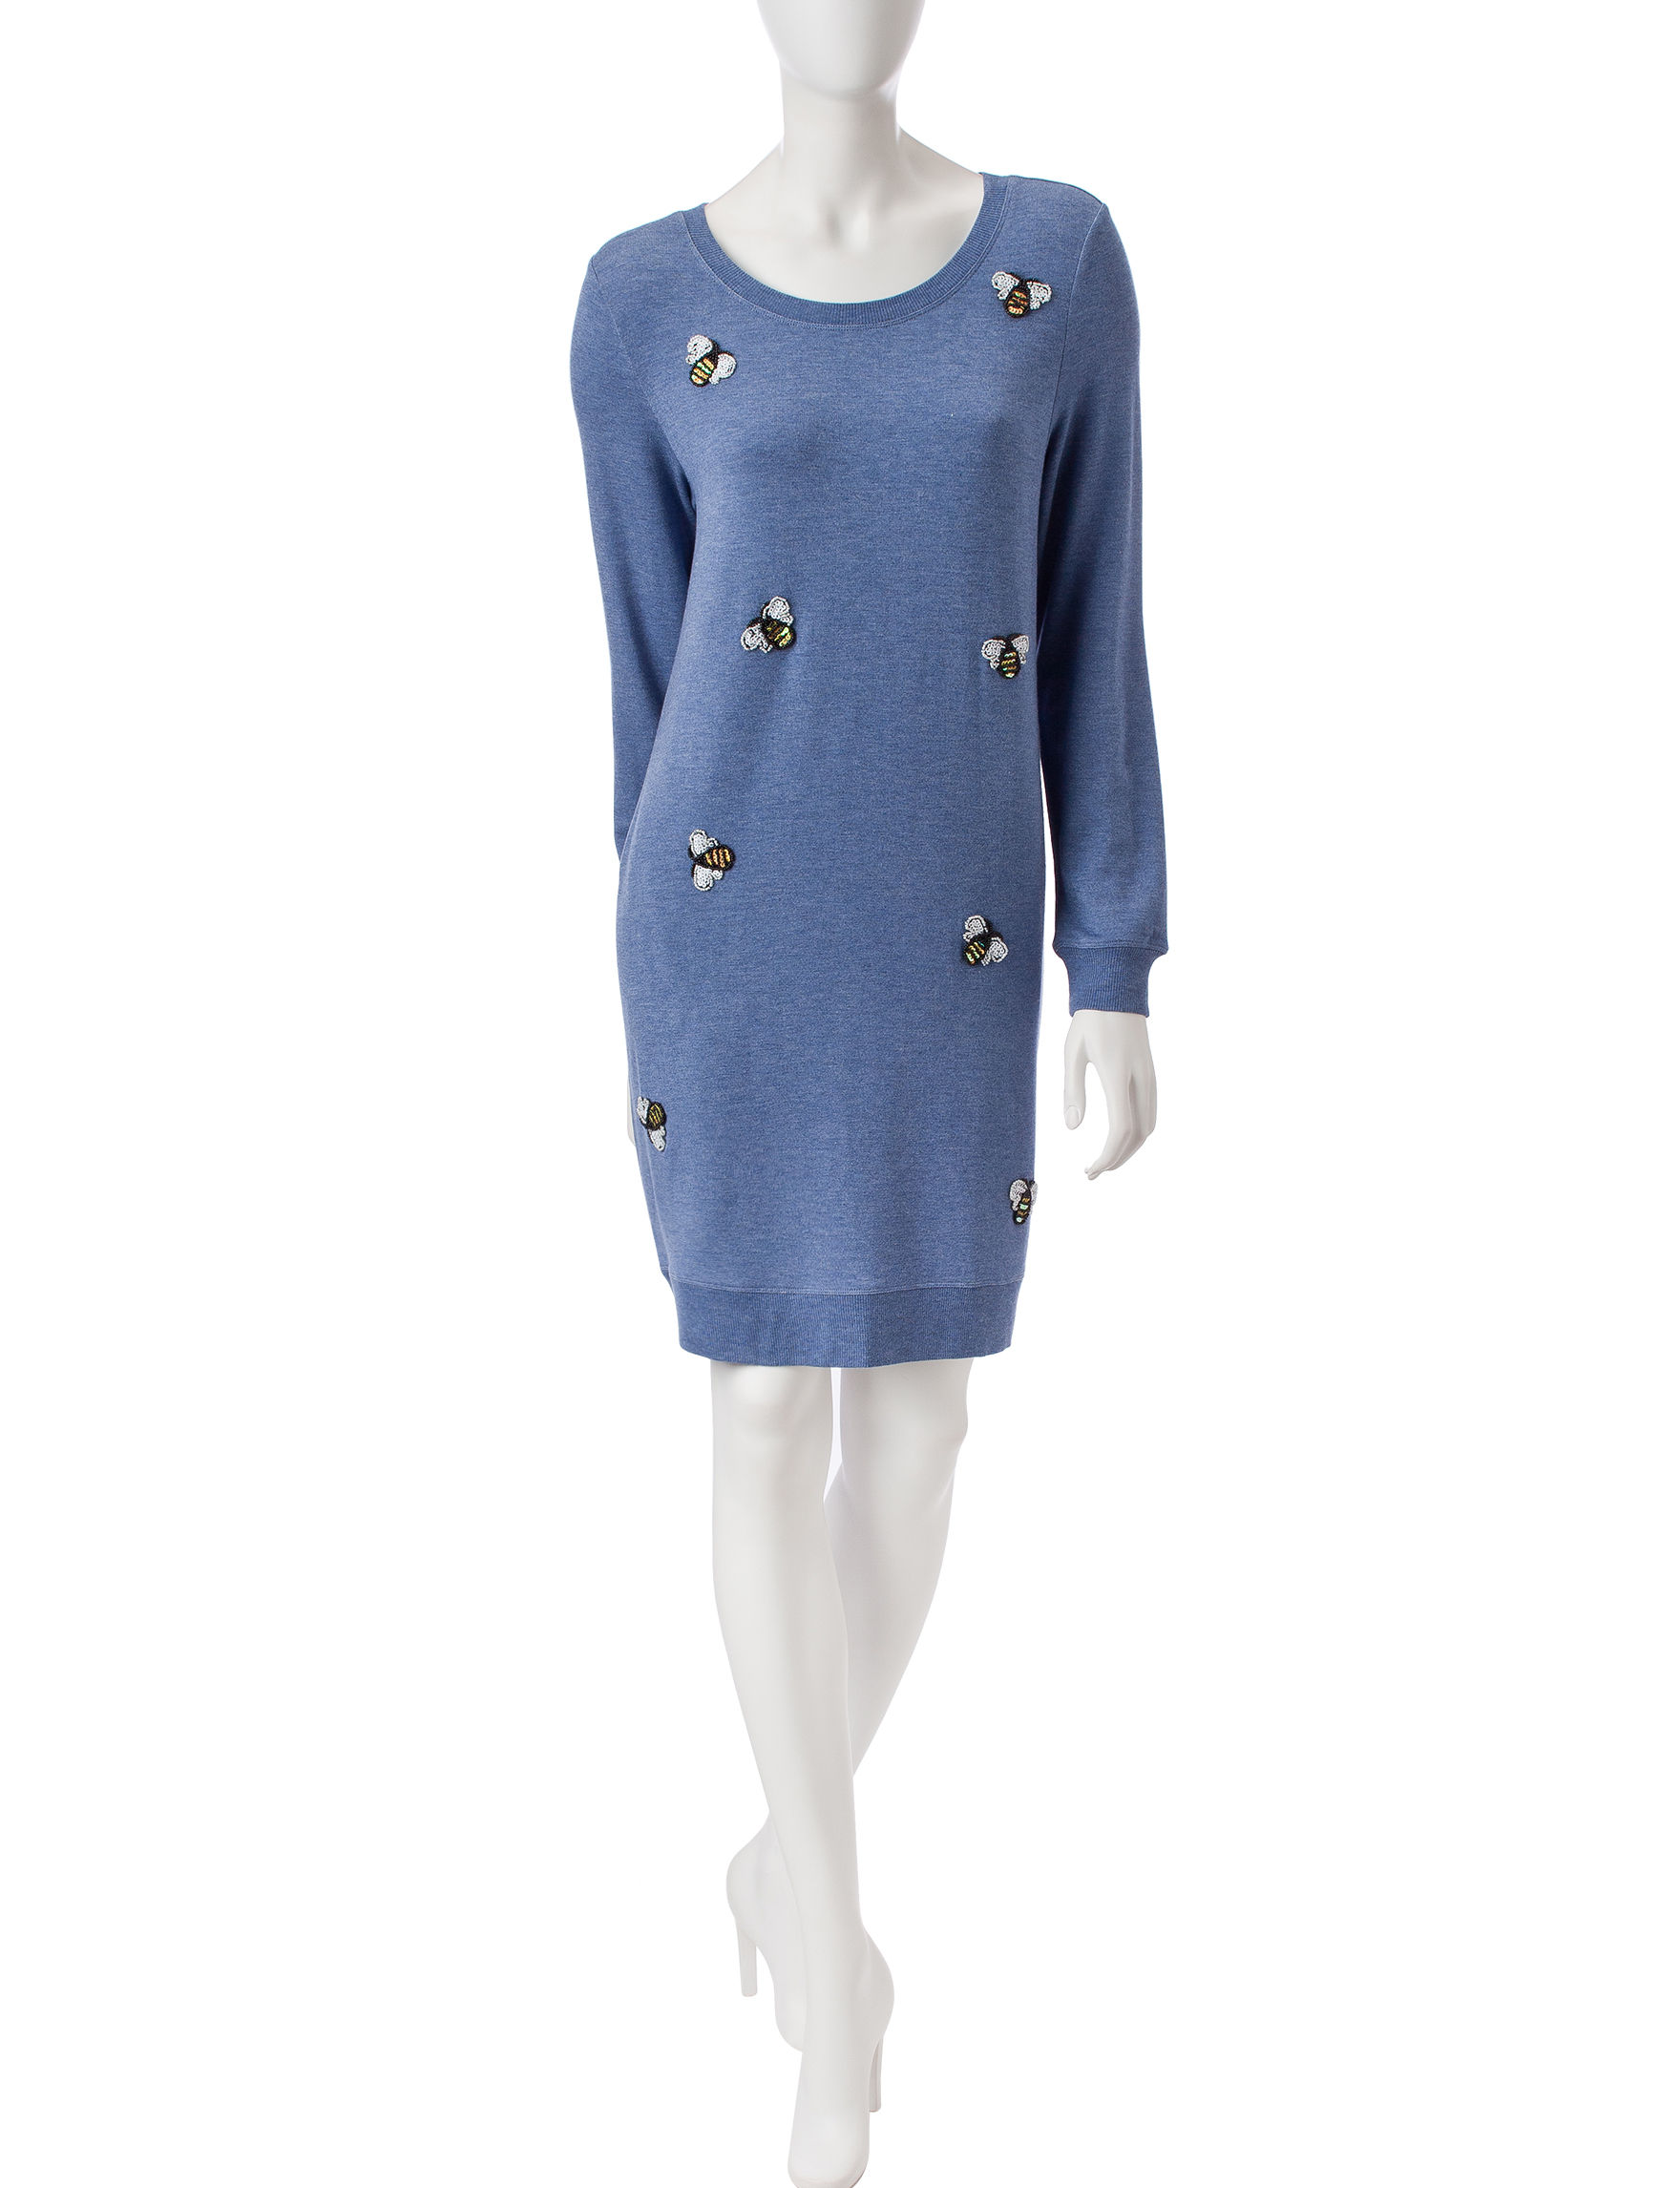 Nic Nation Blue Everyday & Casual Sweater Dresses